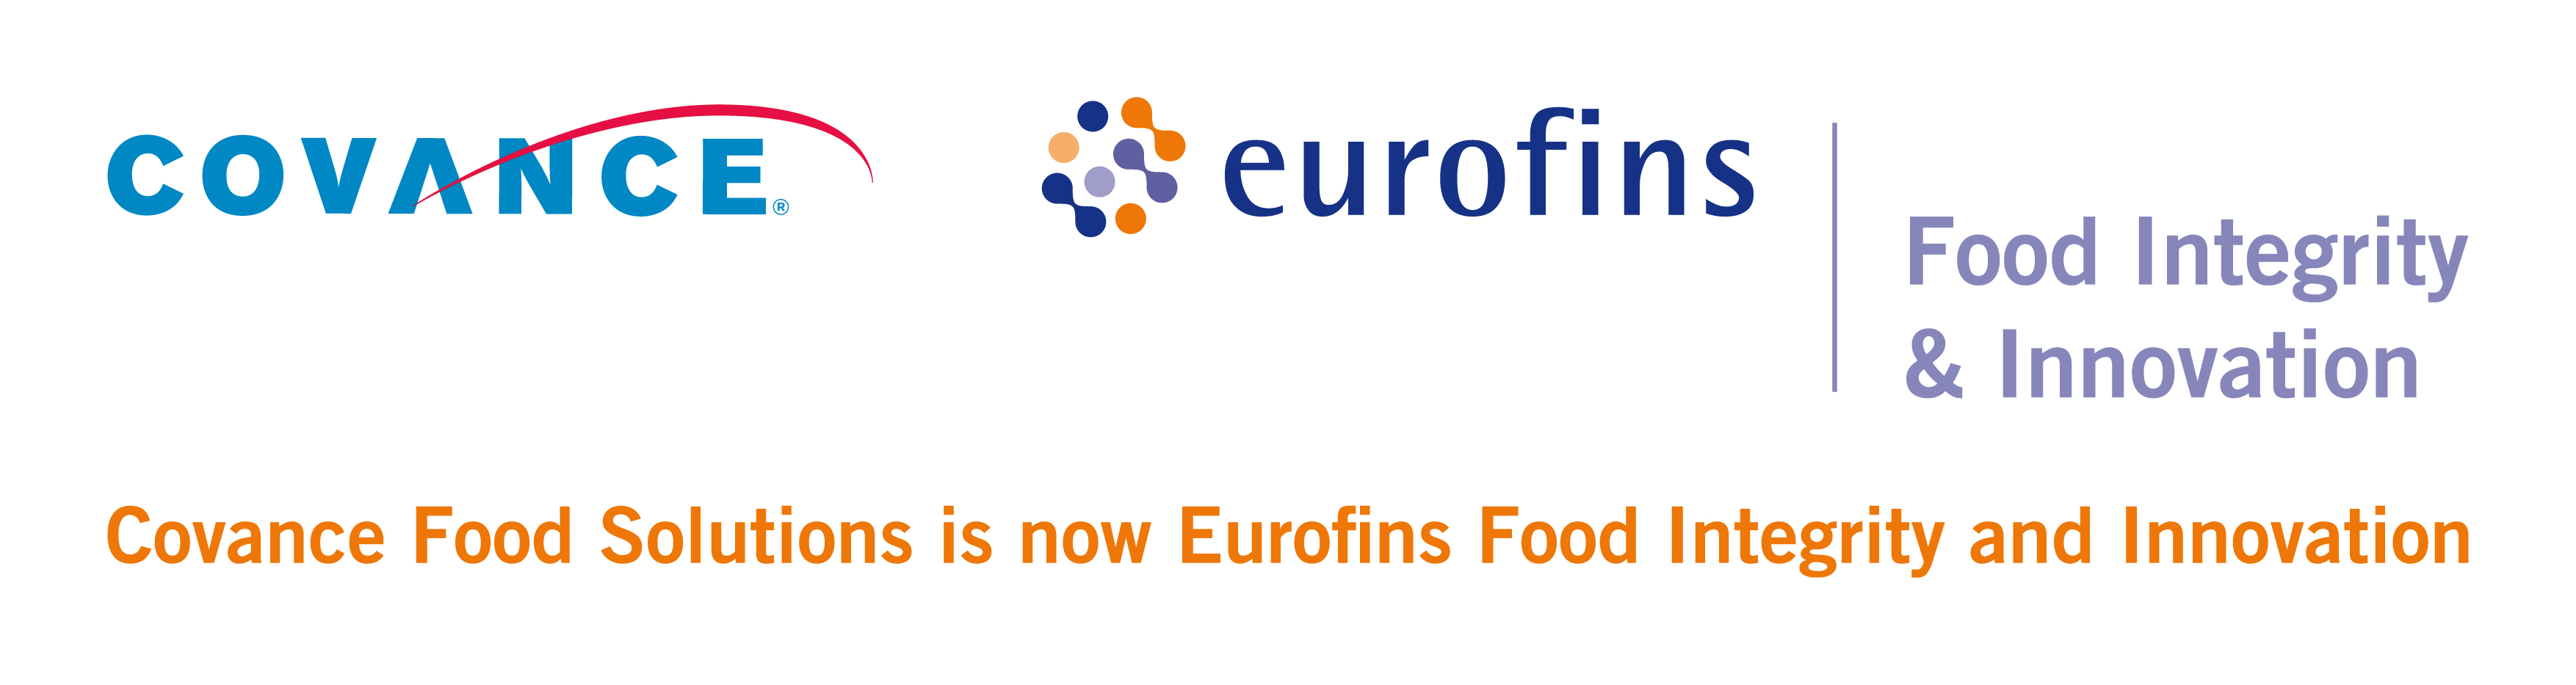 Eurofins Food Integrity & Innovation; Former Covance Food Solutions Laboratory Testing and Scientific Research